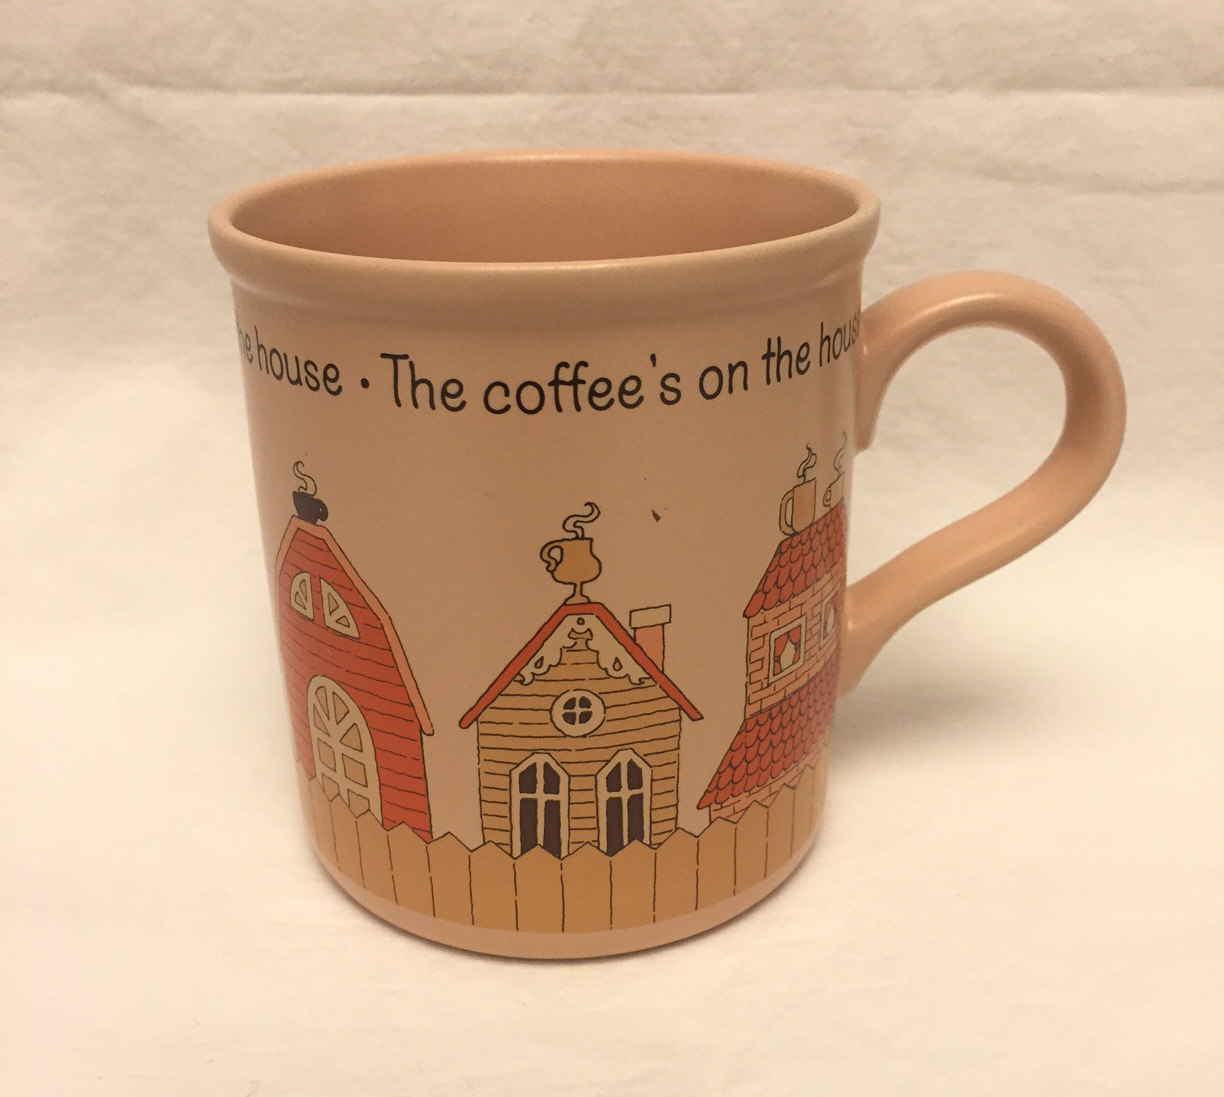 American Greetings Mug 2 Customer Reviews And 46 Listings